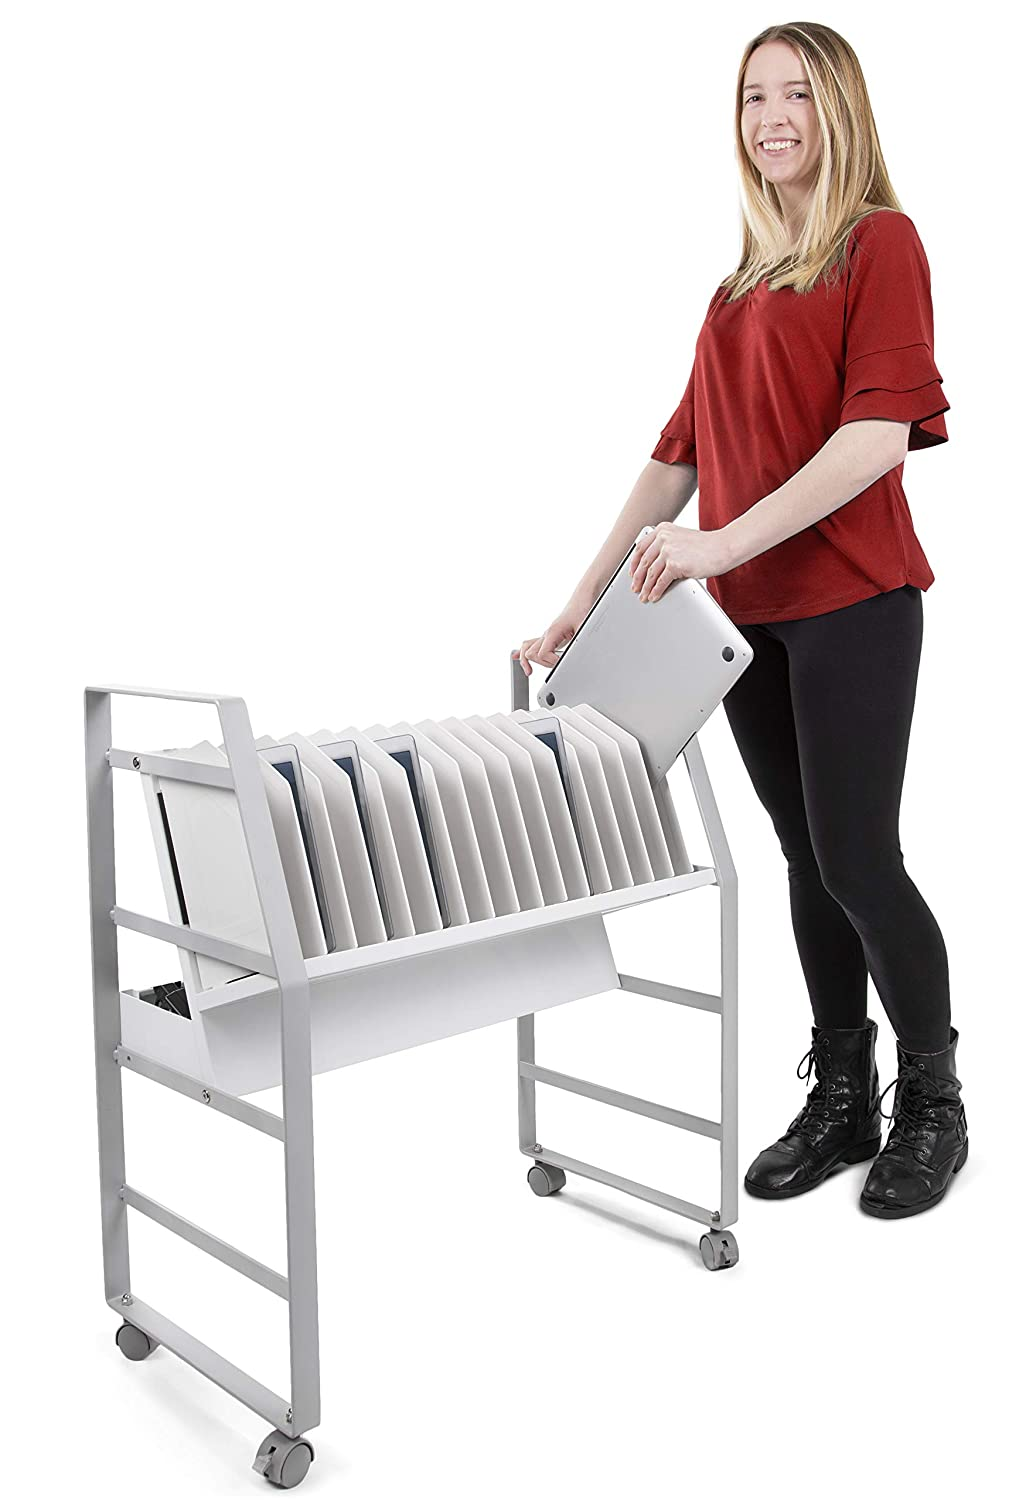 Woman putting a computer in a silver computer cart.